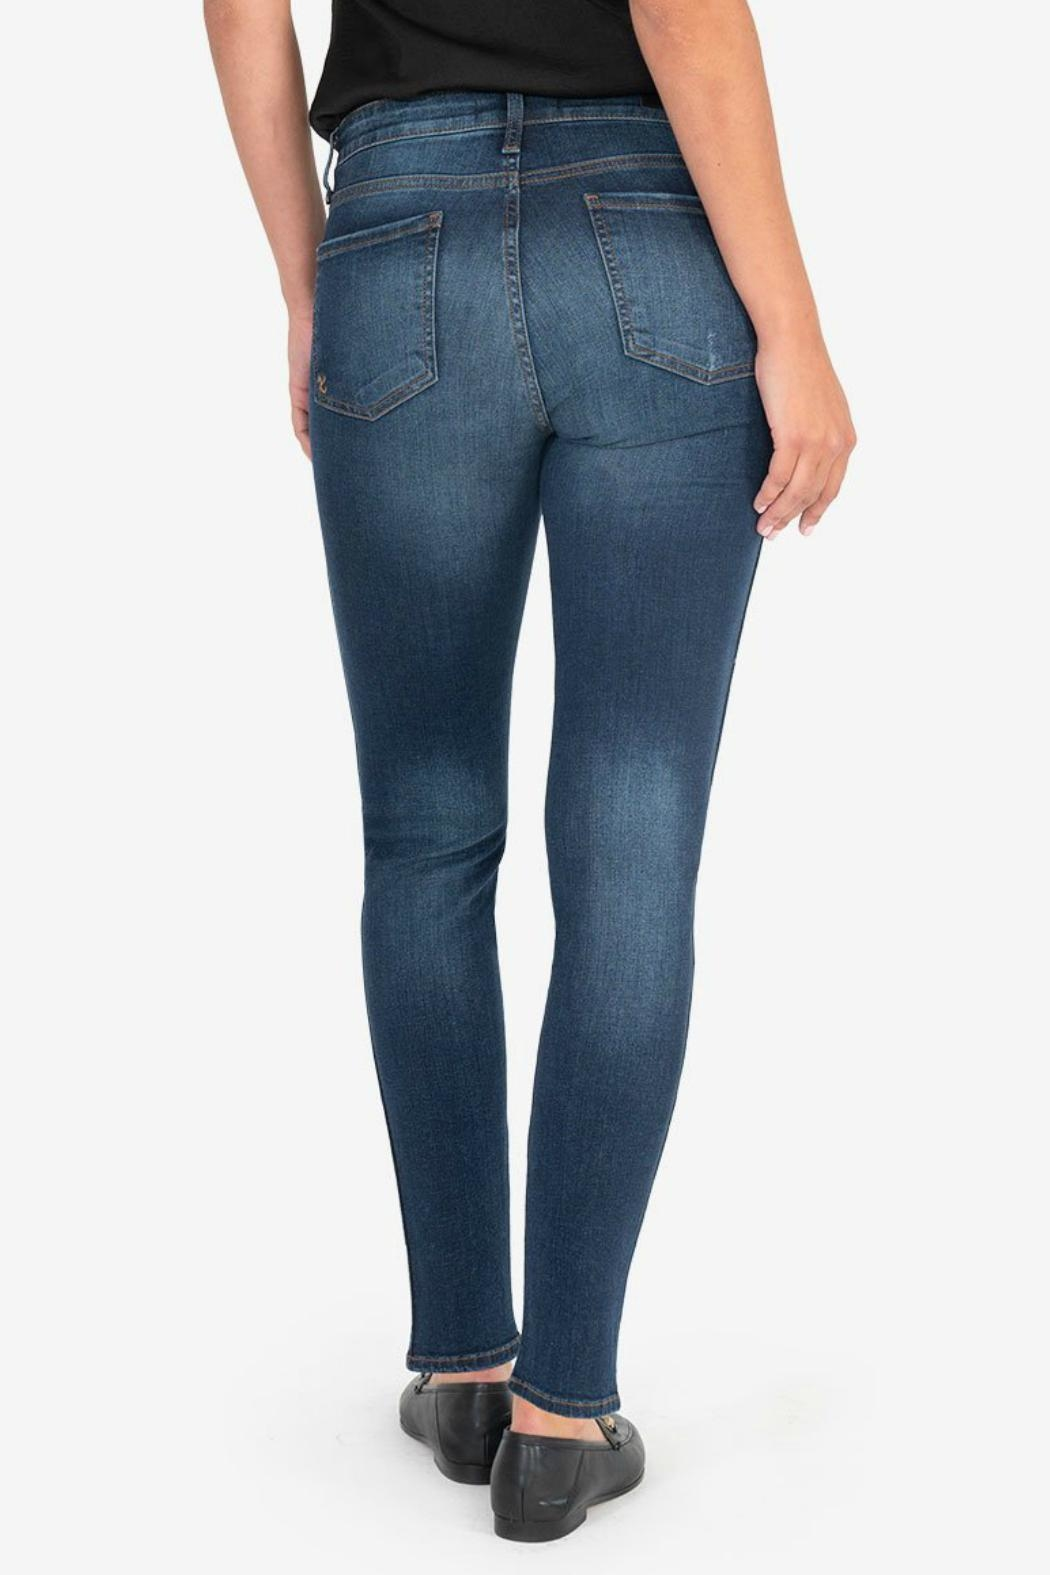 Kut from the Kloth Diana Fab-Ab Released-Fit-Skinny - Front Full Image